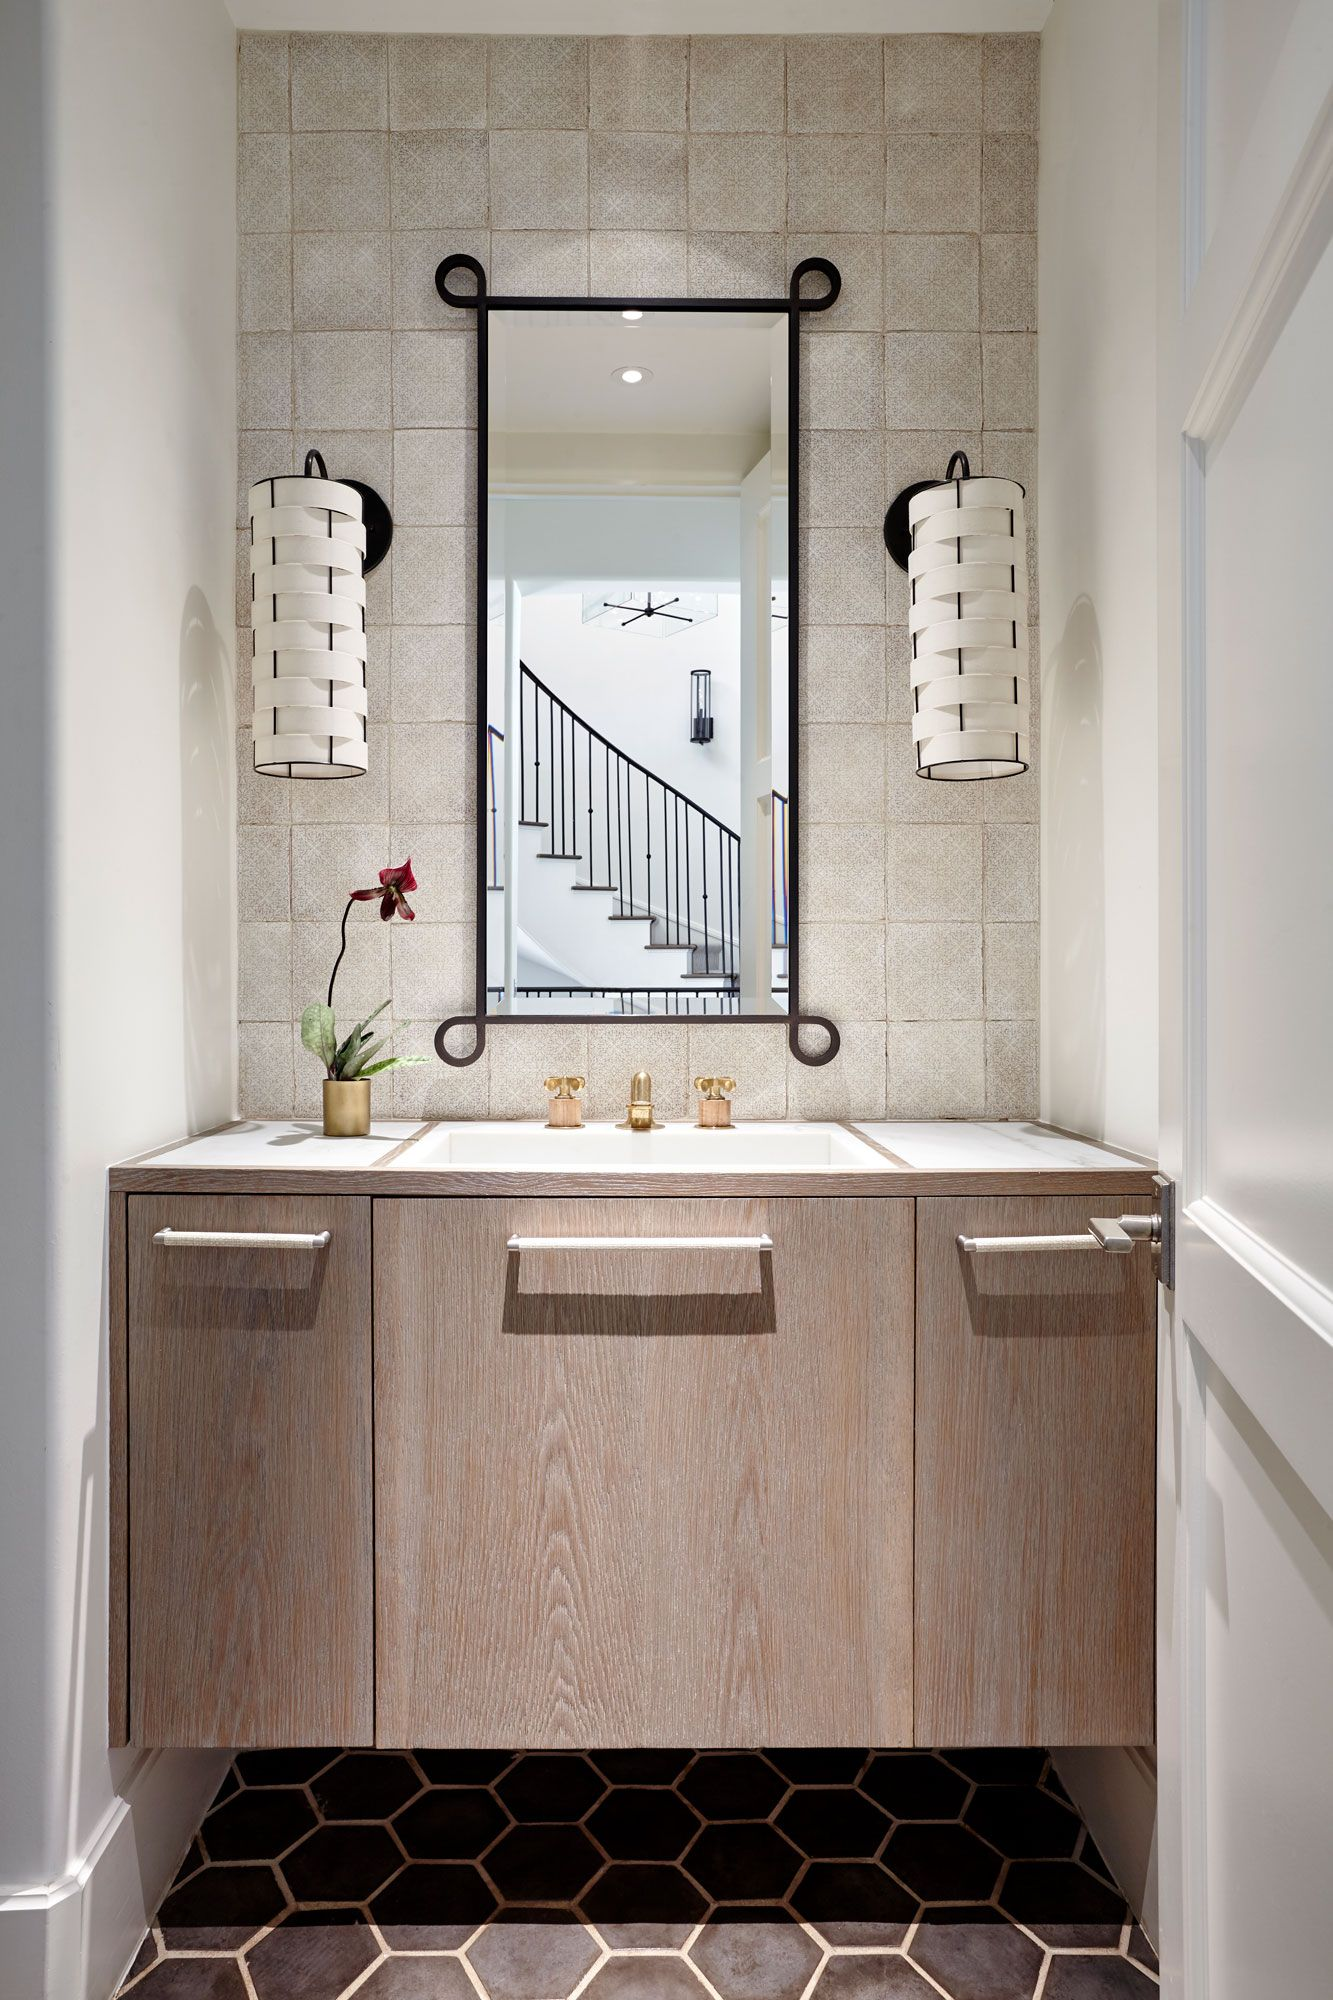 Simple powder room, small space well designed